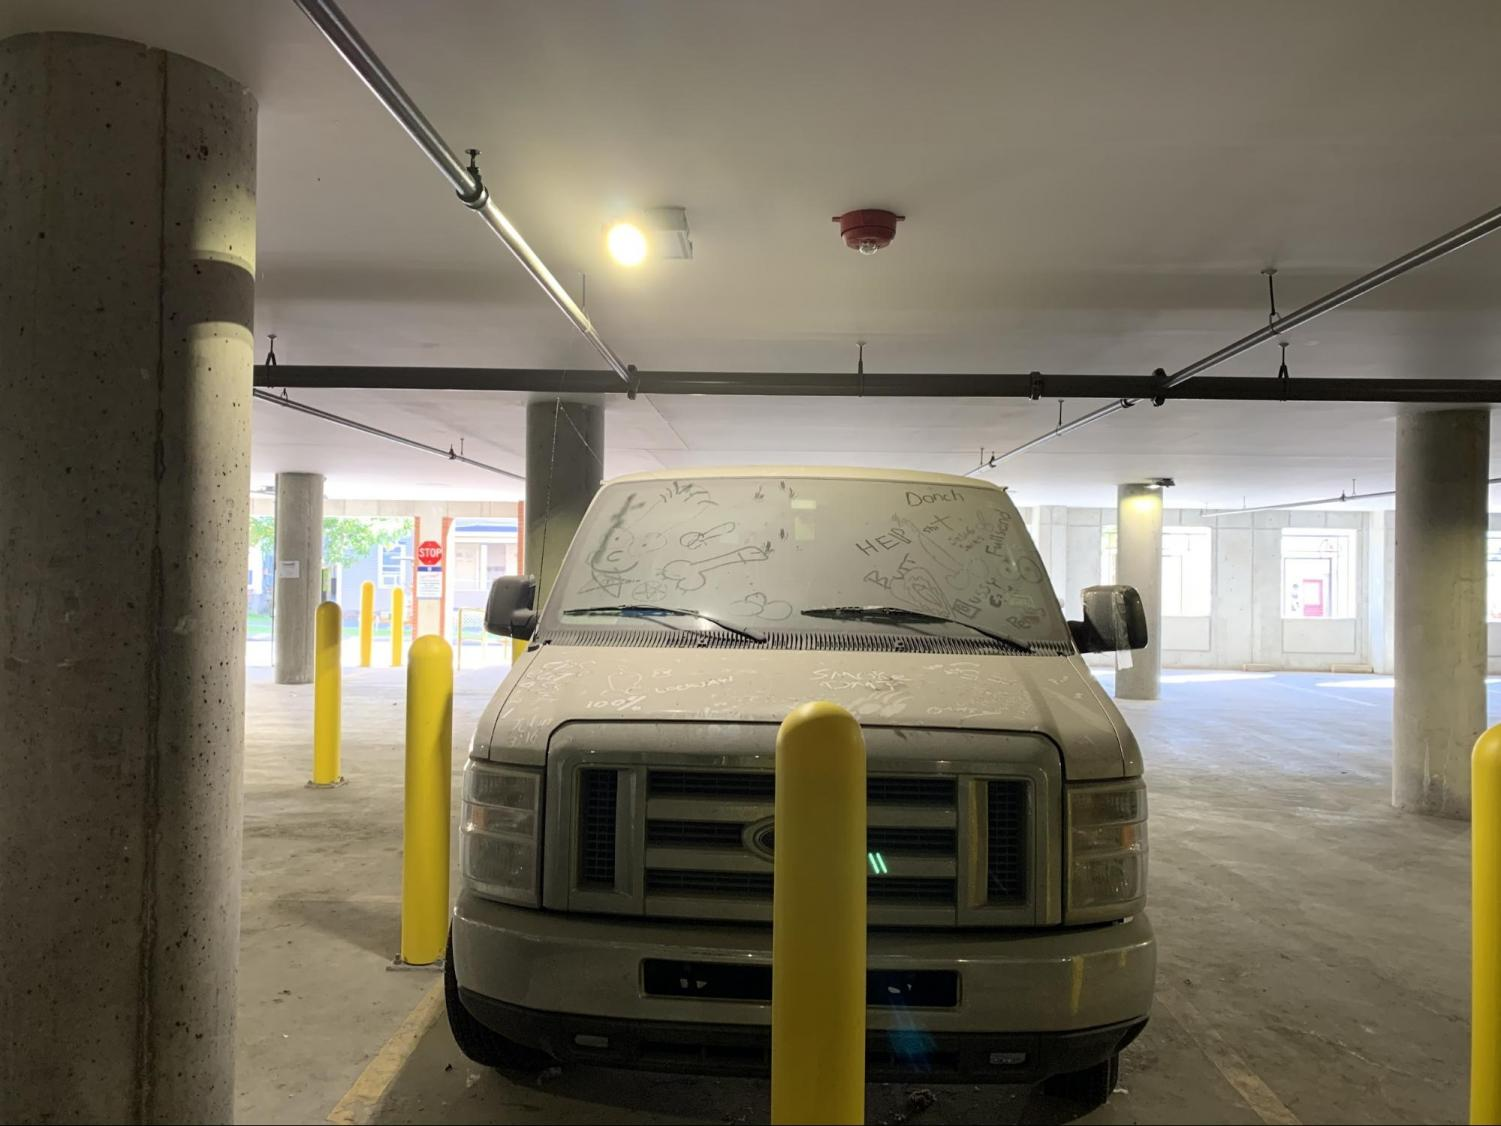 This white van hasn't moved from the Maple Street parking garage under 194 St. Paul Street since early this summer. Students have graffitied in the dust accrued on the body.